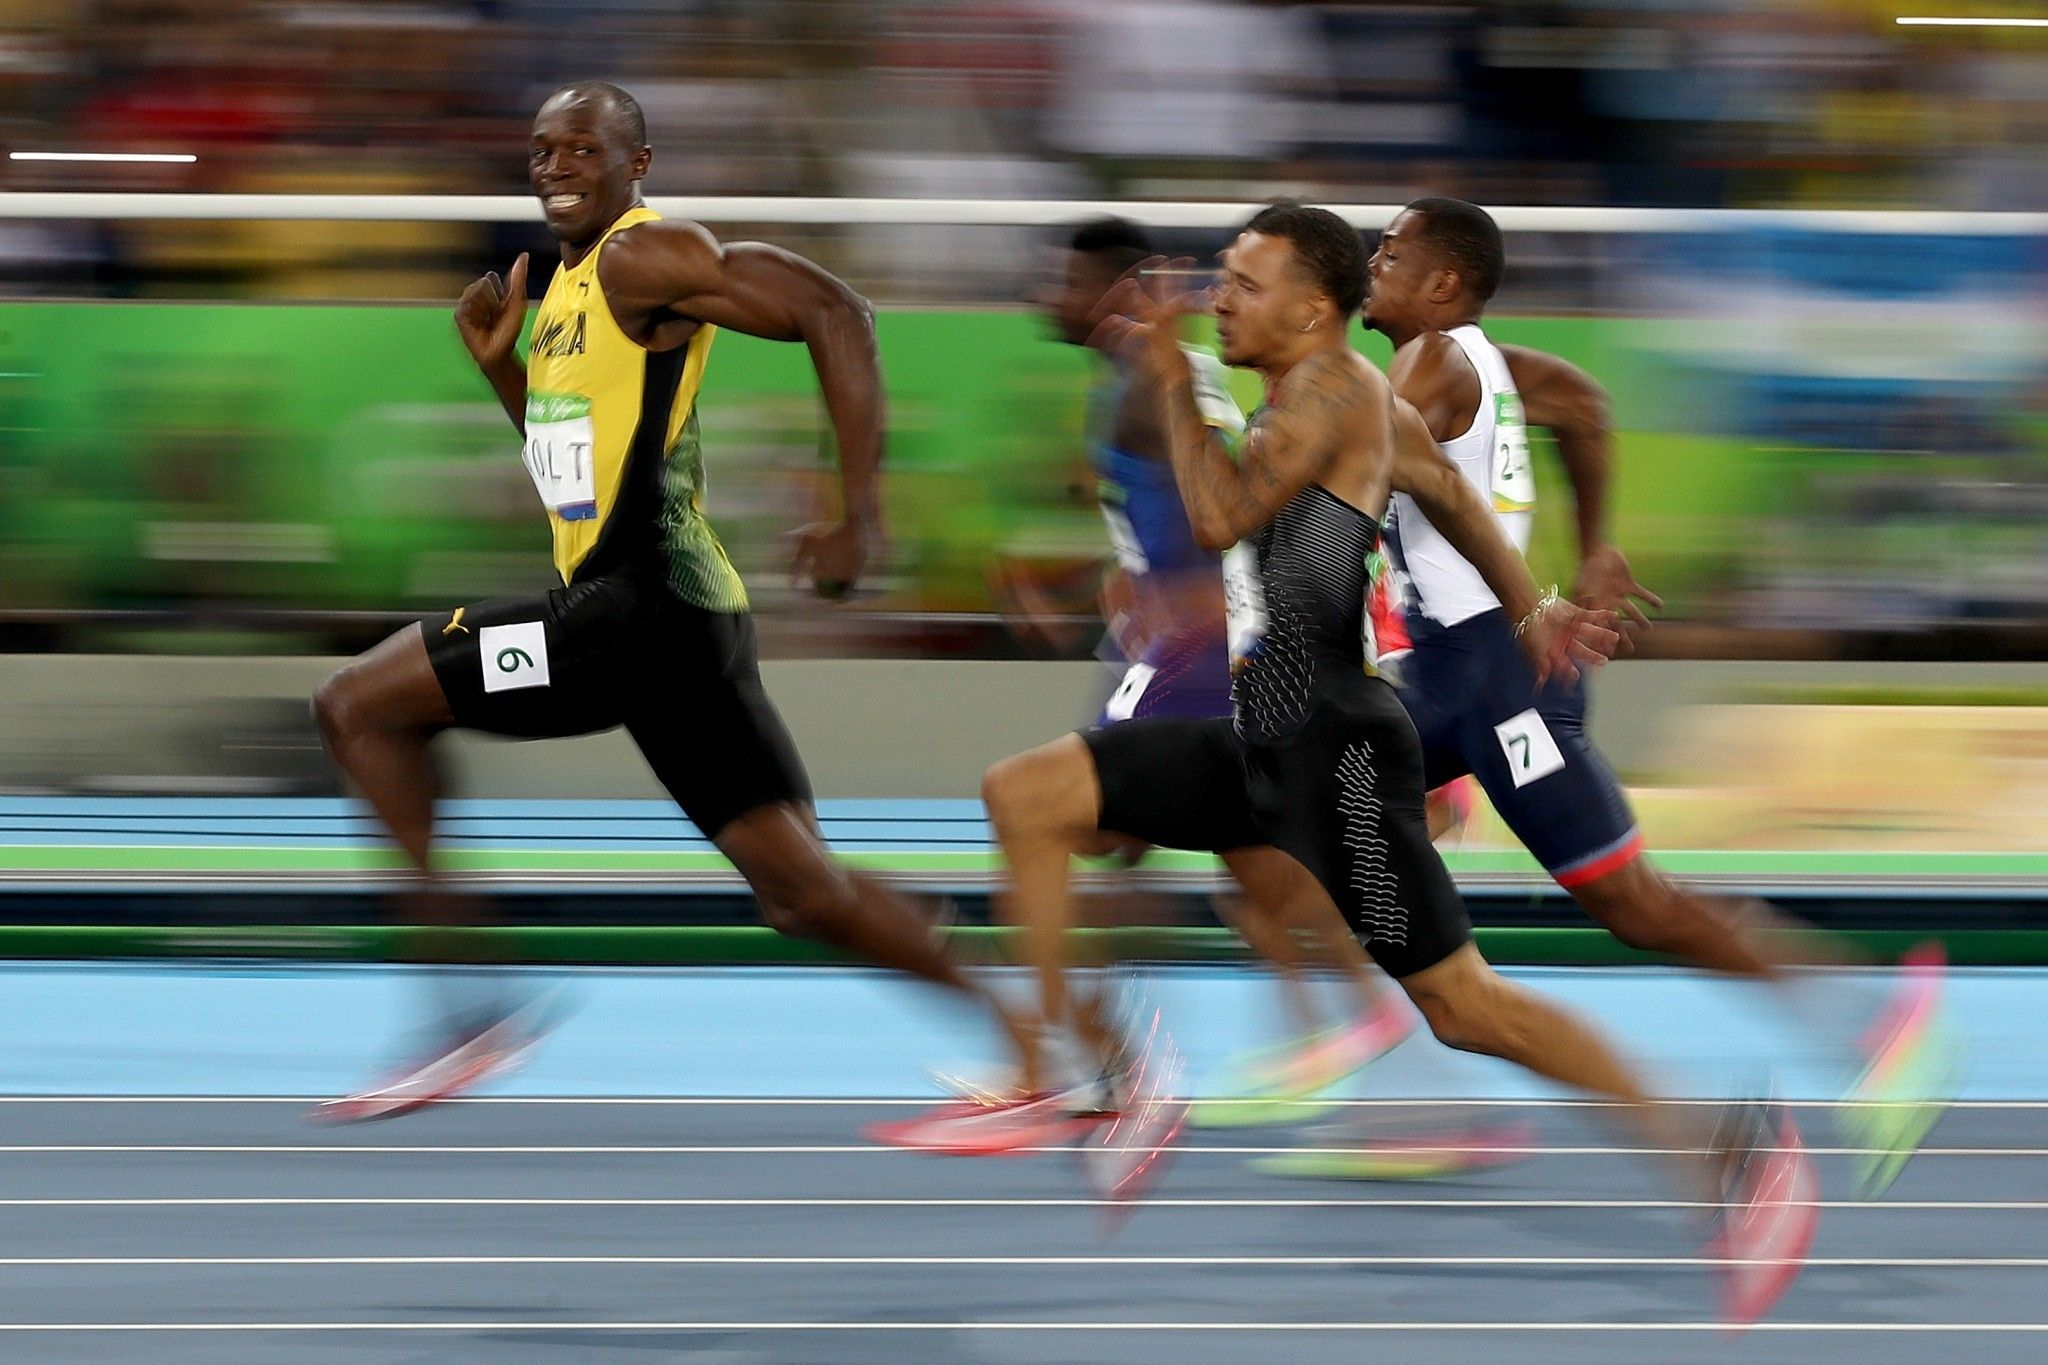 Meet the photographer who took the iconic photo of Usain Bolt ...